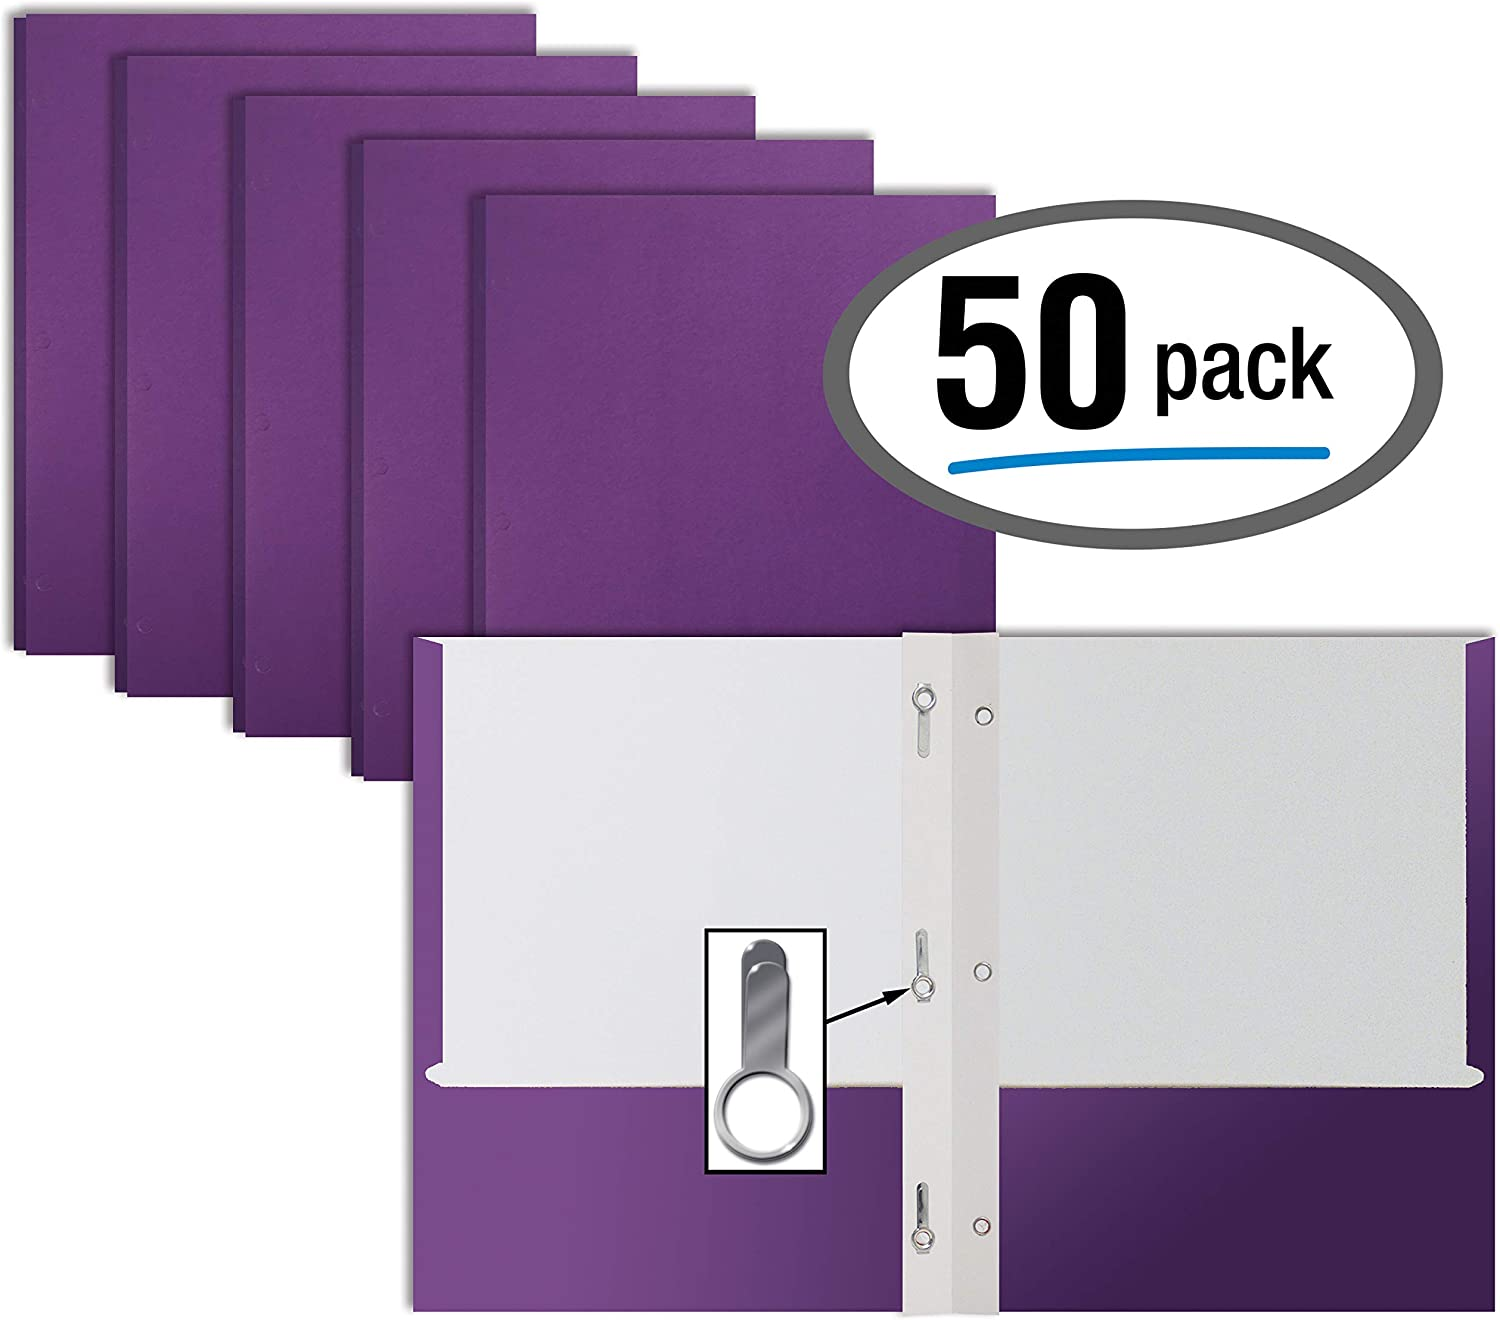 Purple Paper 2 Pocket Folders with Prongs, 50 Pack, by Better Office Products, Matte Texture, Letter Size Paper Folders, 50 Pack, with 3 Metal Prong Fastener Clips, Purple